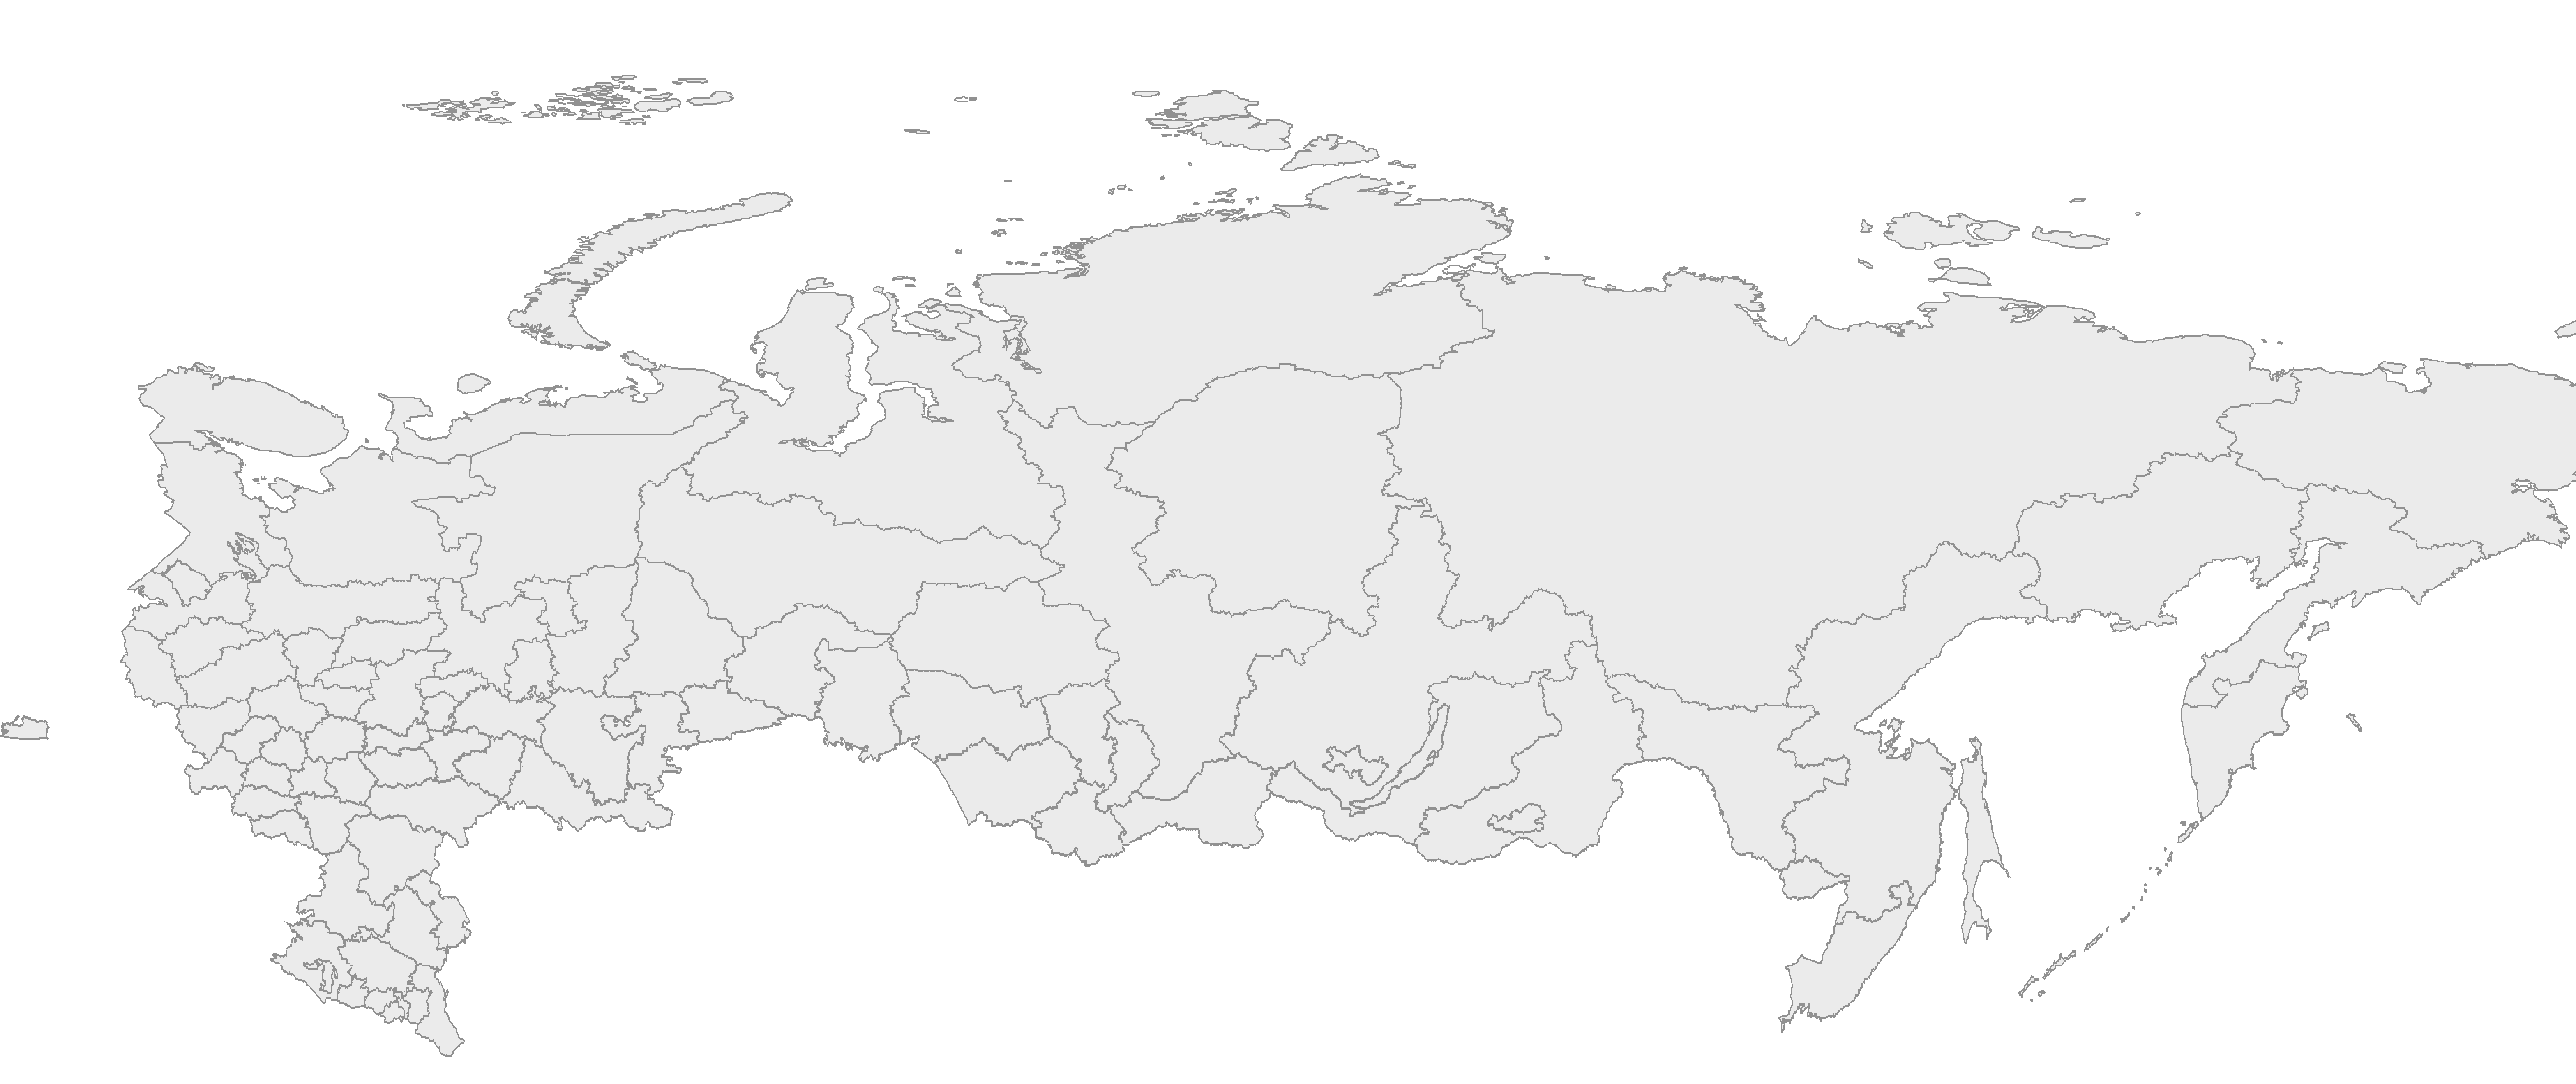 Russia Divisions large map